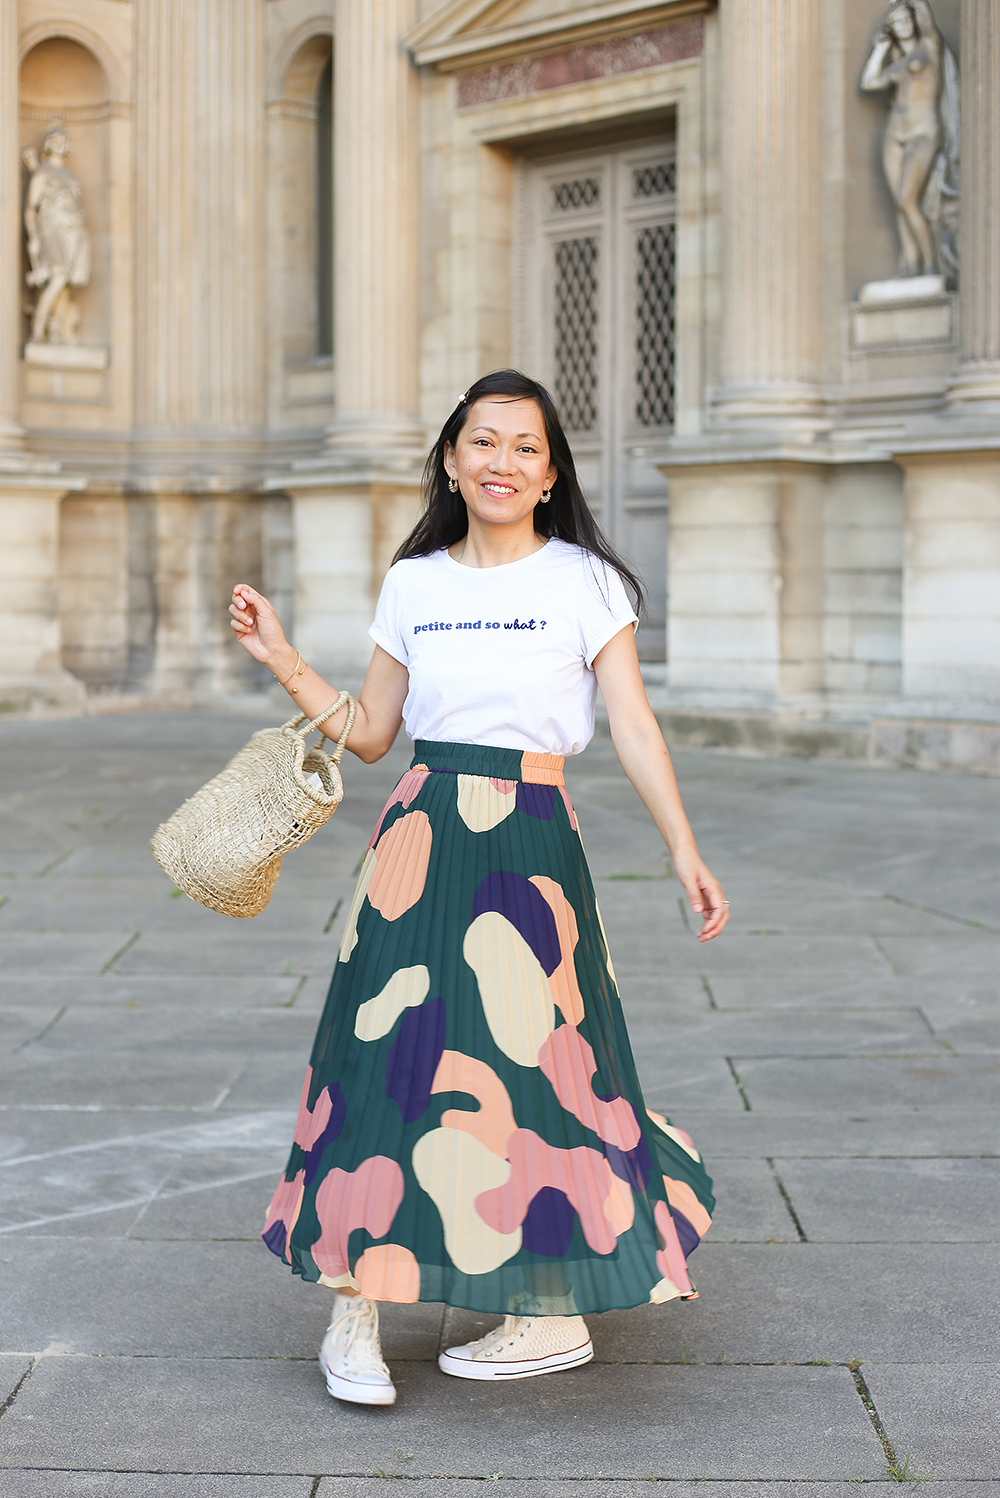 petite-and-so-what-comment-porter-tee-shirt-a-message-1000